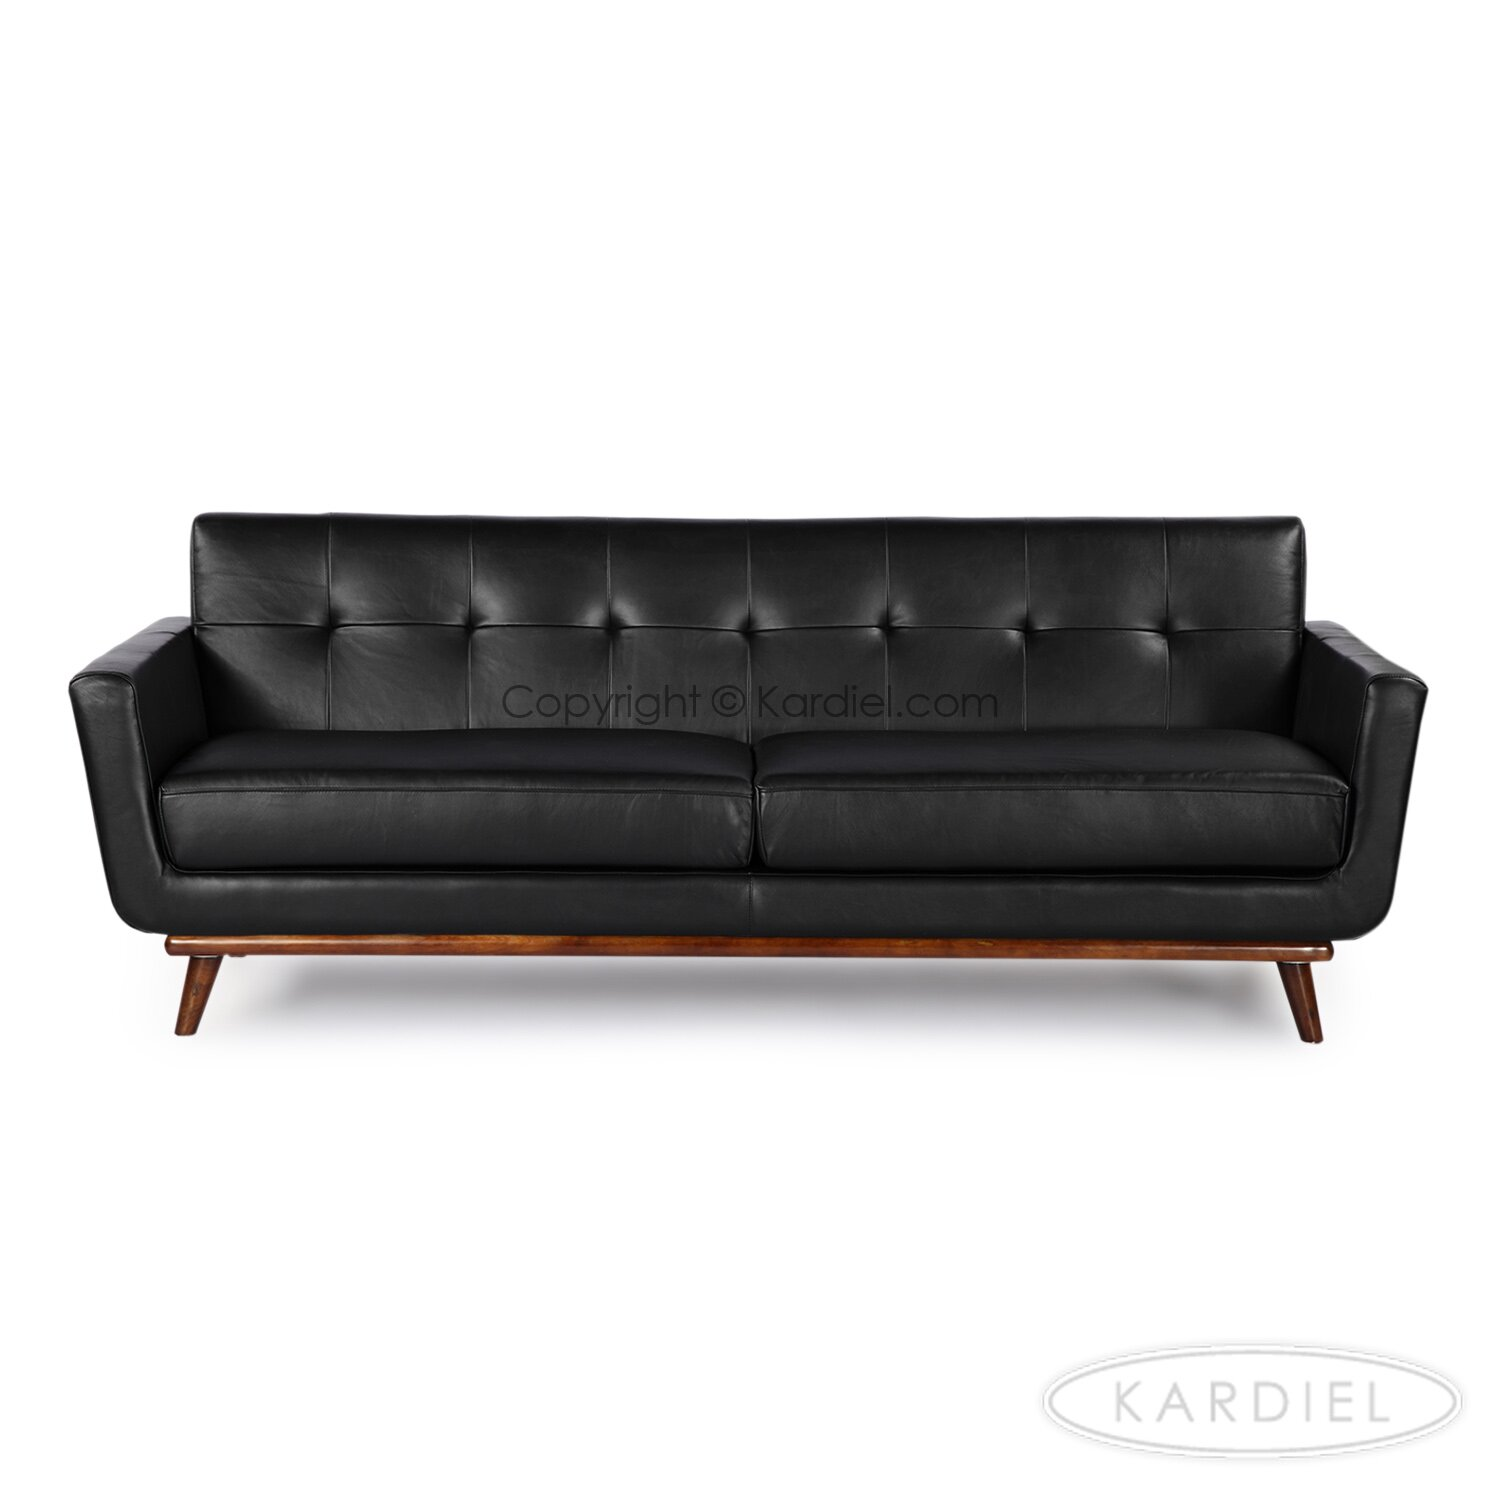 jackie mid century modern vintage leather sofa by kardiel